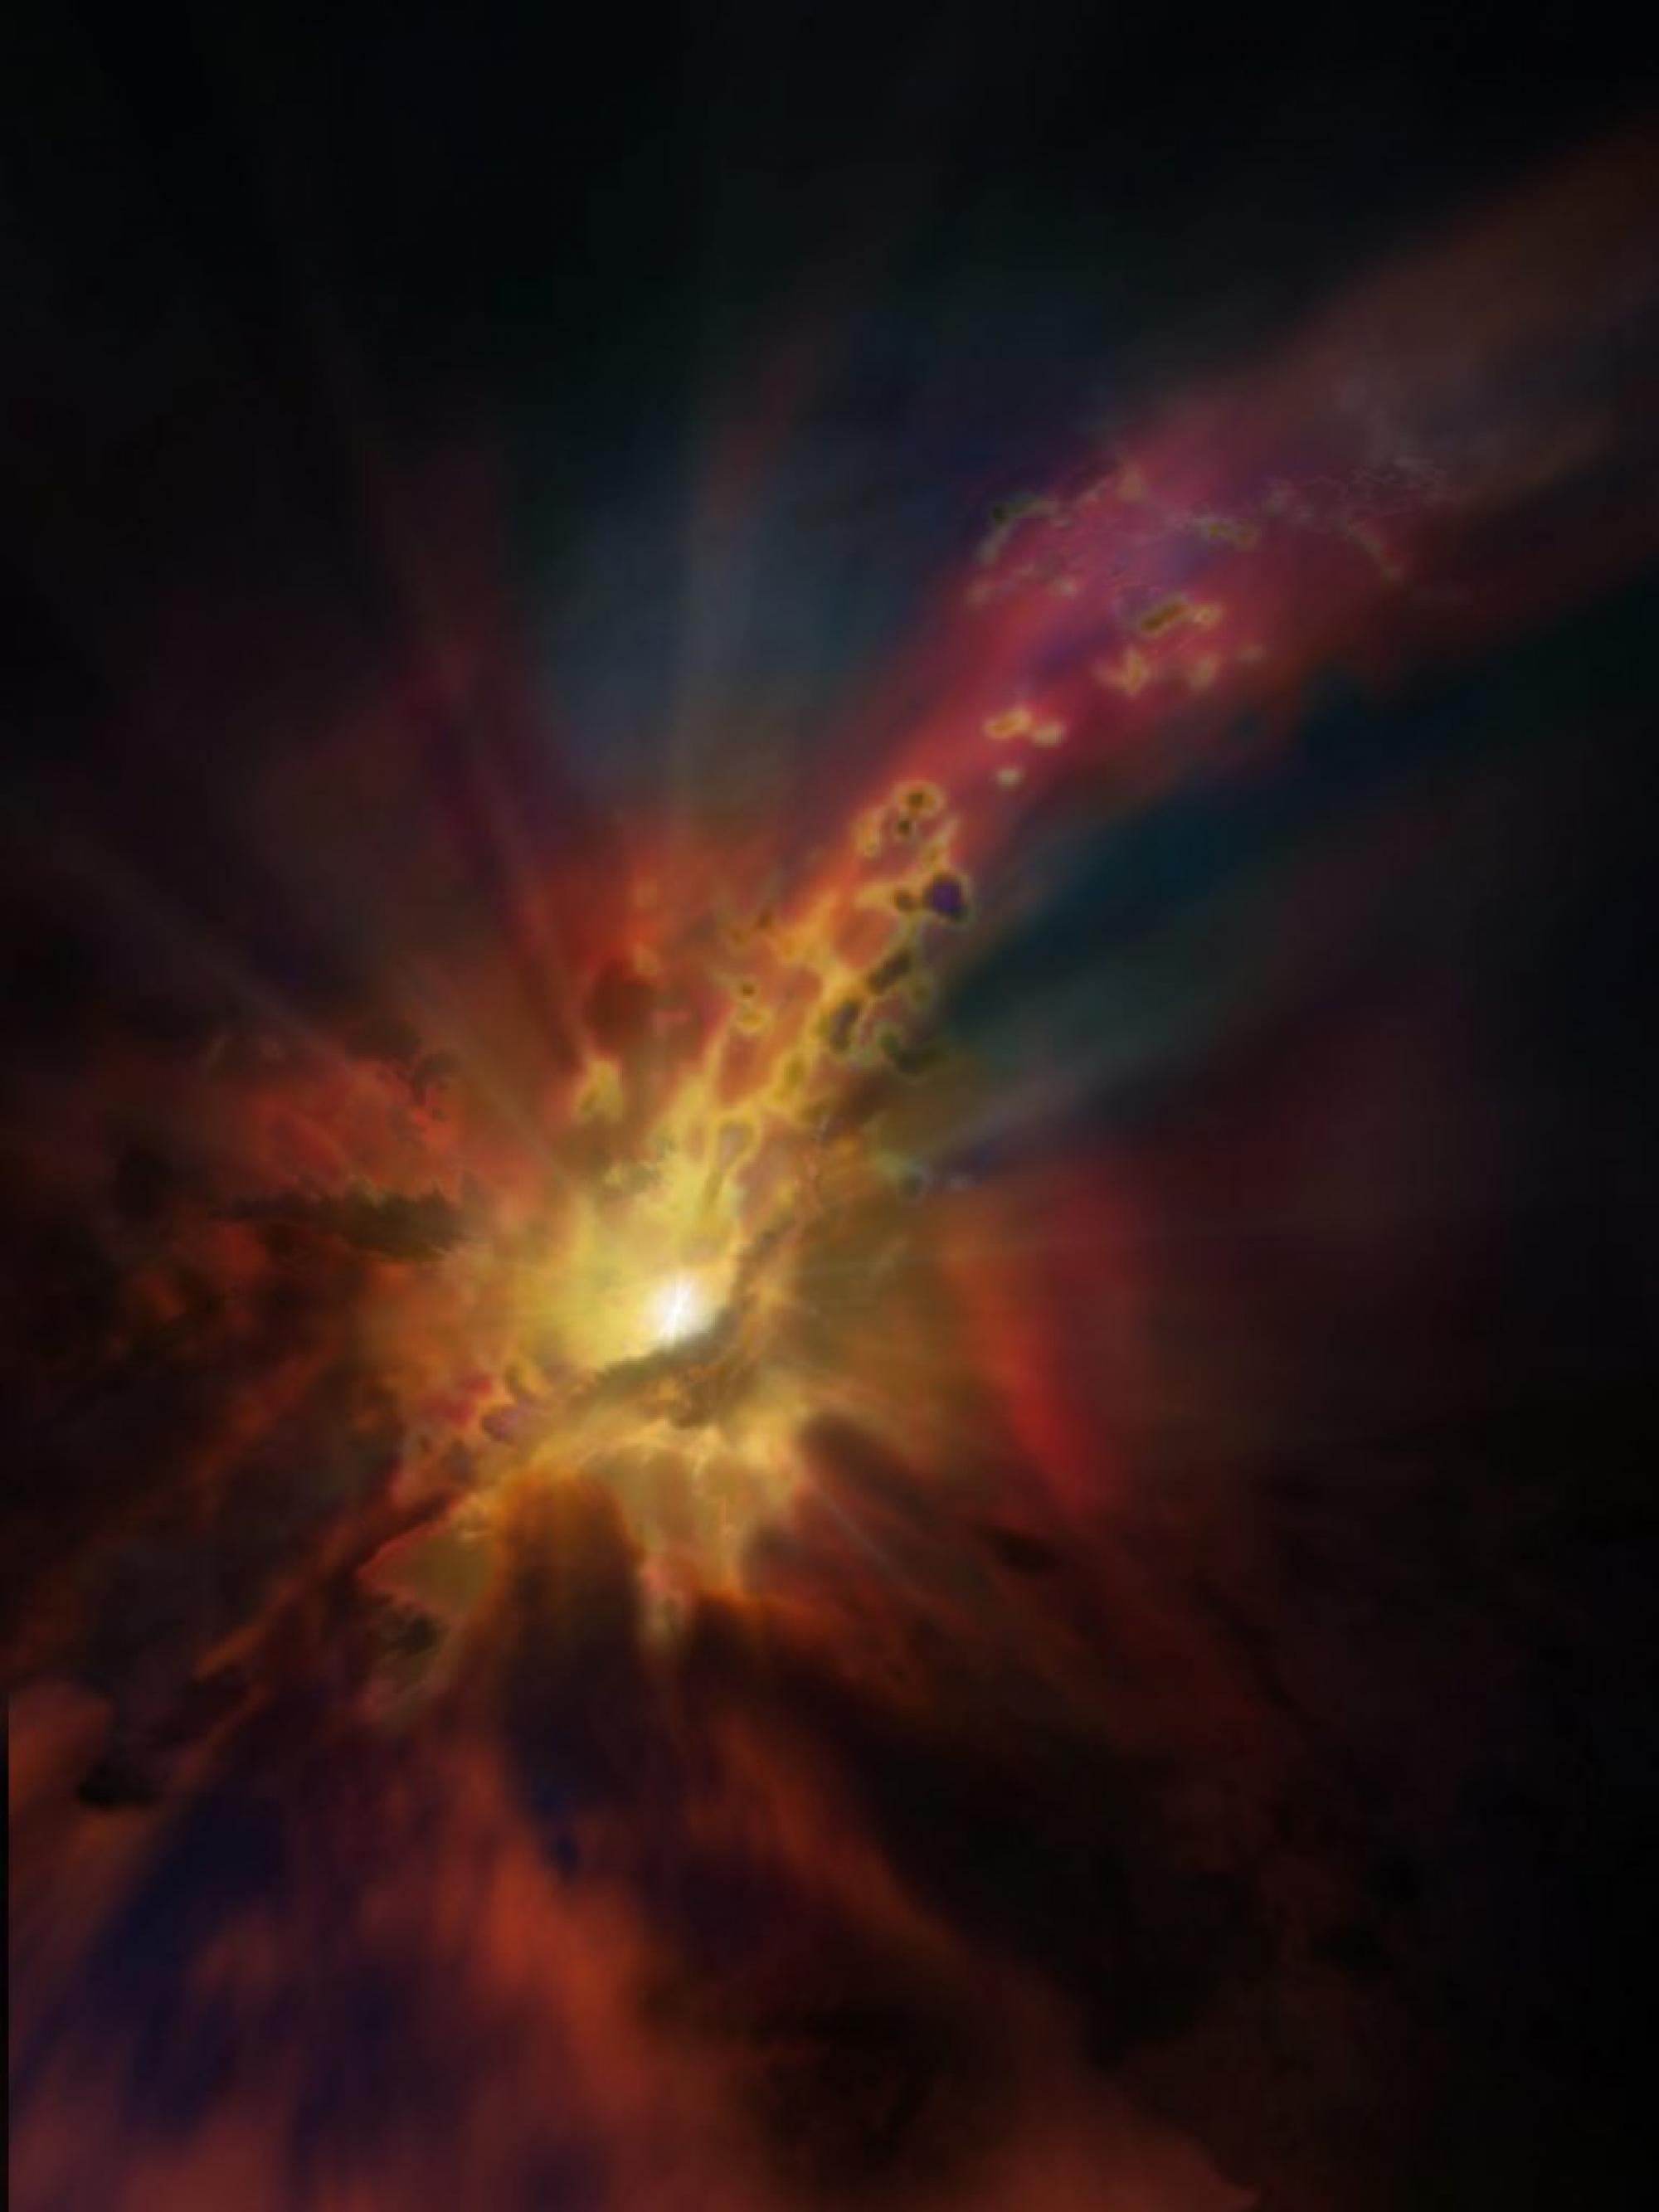 Artist impression of an outflow of molecular gas from an active star-forming galaxy.